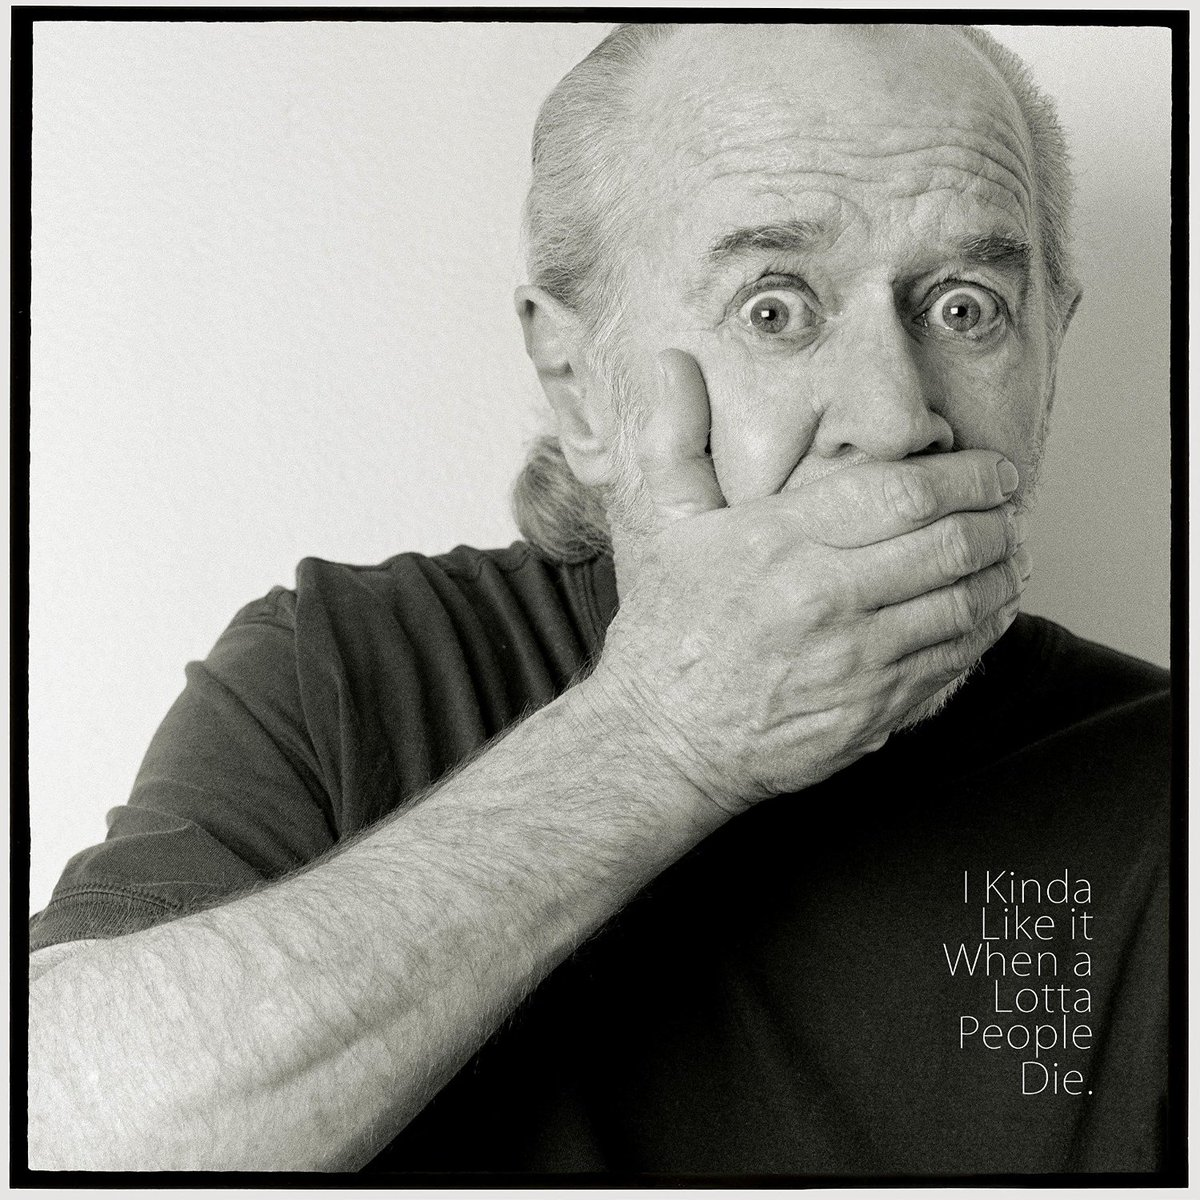 george carlin textgeorge carlin quotes, george carlin books, george carlin stand up, george carlin life is worth losing, george carlin wiki, george carlin young, george carlin euphemisms, george carlin it's bad for ya, george carlin back in town, george carlin you are all diseased, george carlin last words, george carlin books pdf, george carlin doin' it again, george carlin jammin in new york, george carlin full, george carlin death, george carlin text, george carlin russia, george carlin movies, george carlin gif